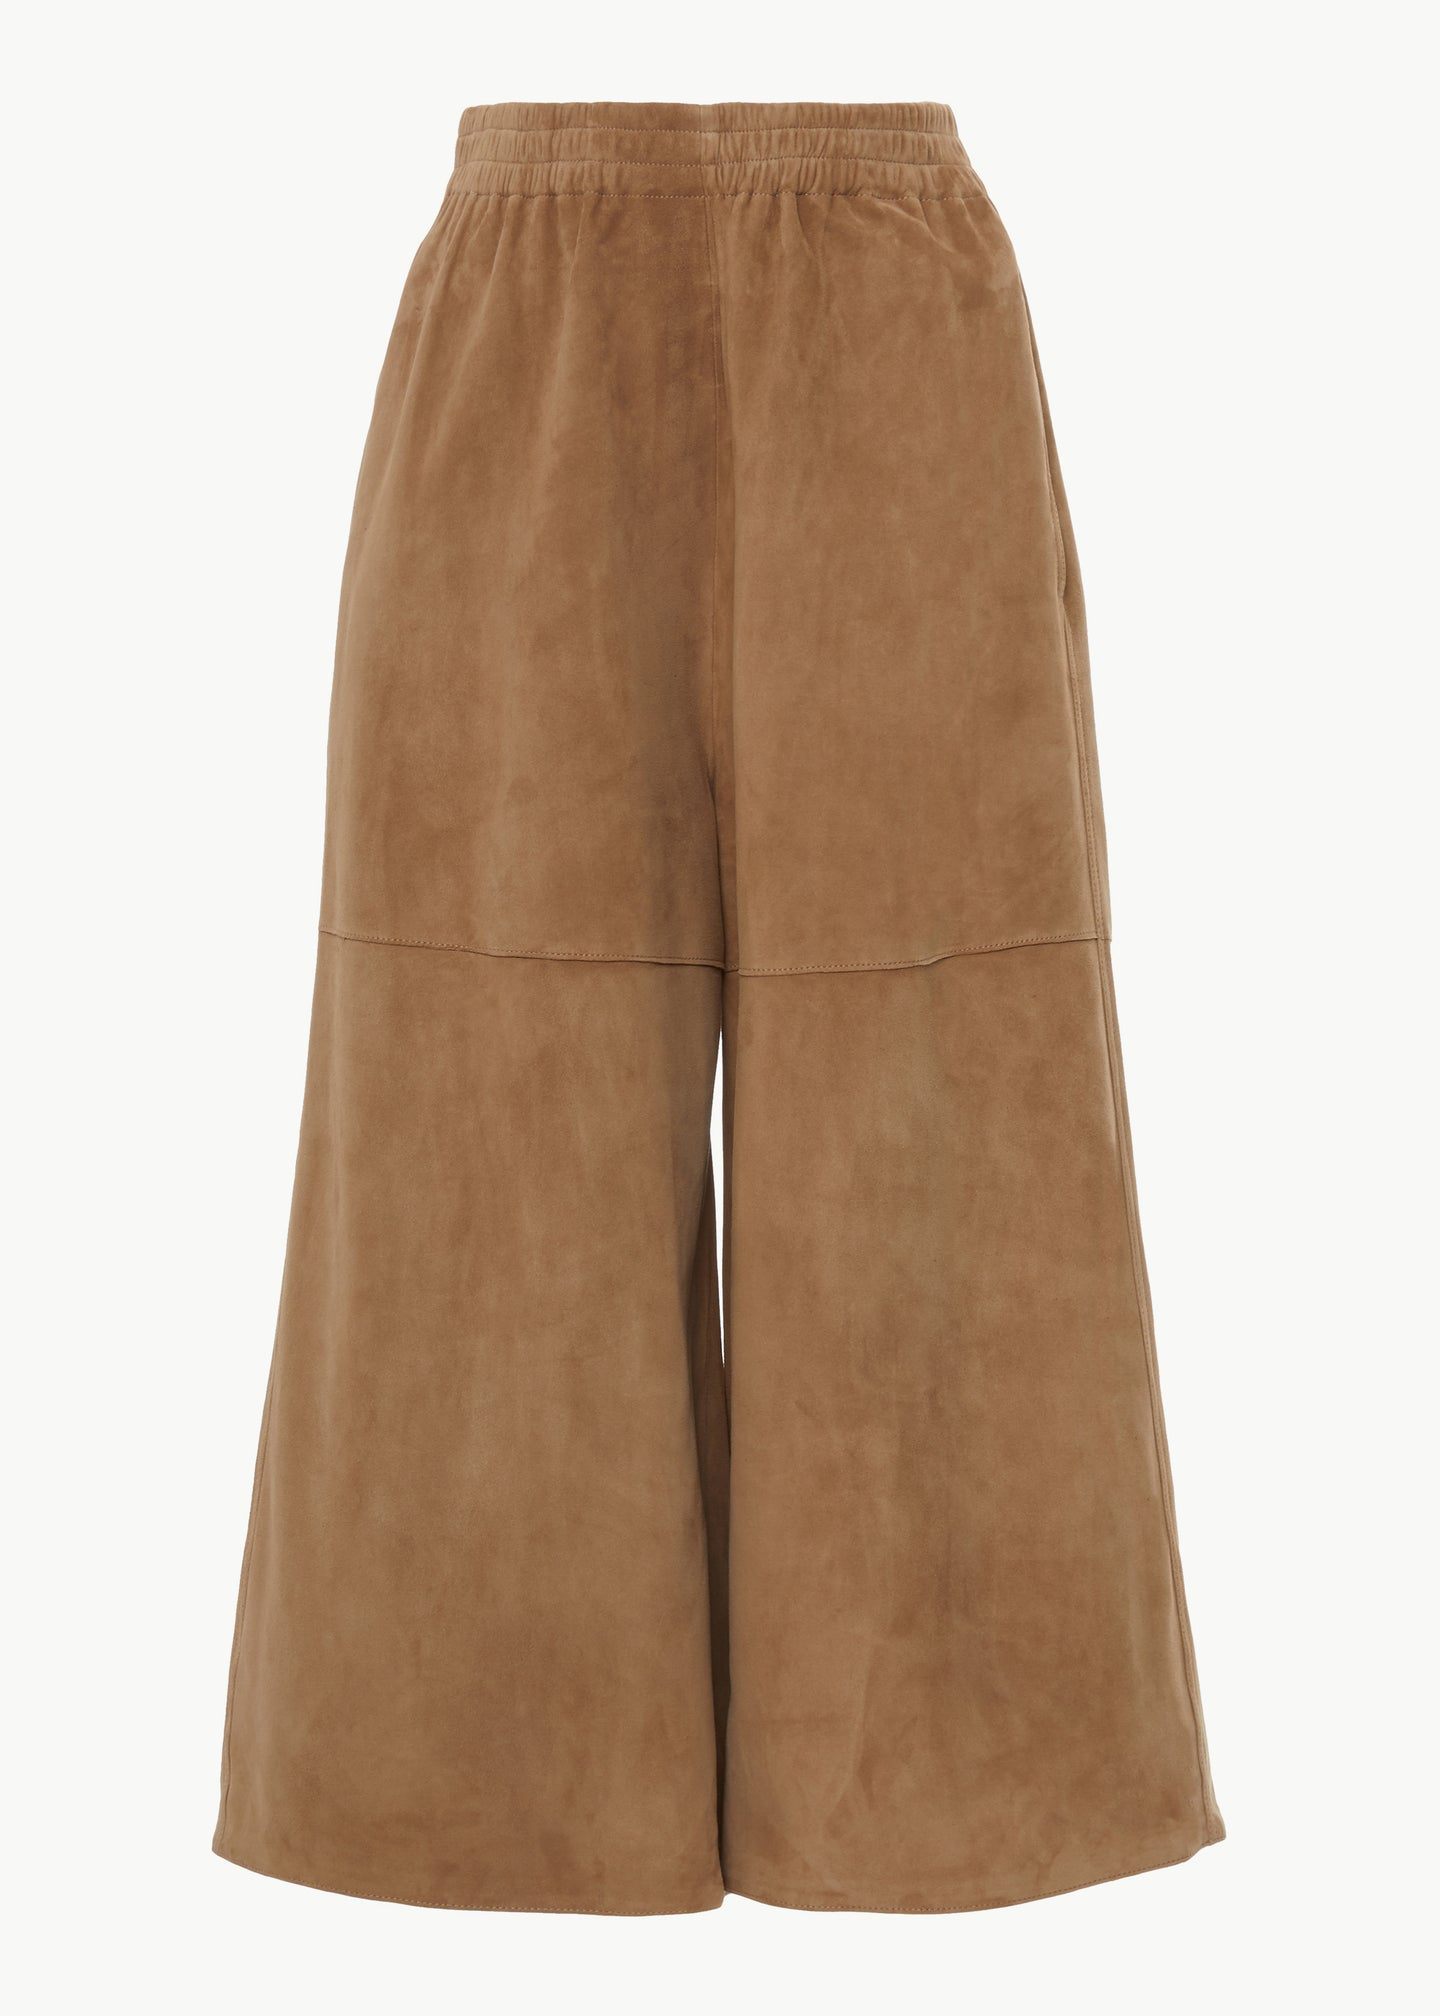 Gaucho Pant in Suede - Taupe - Co Collections